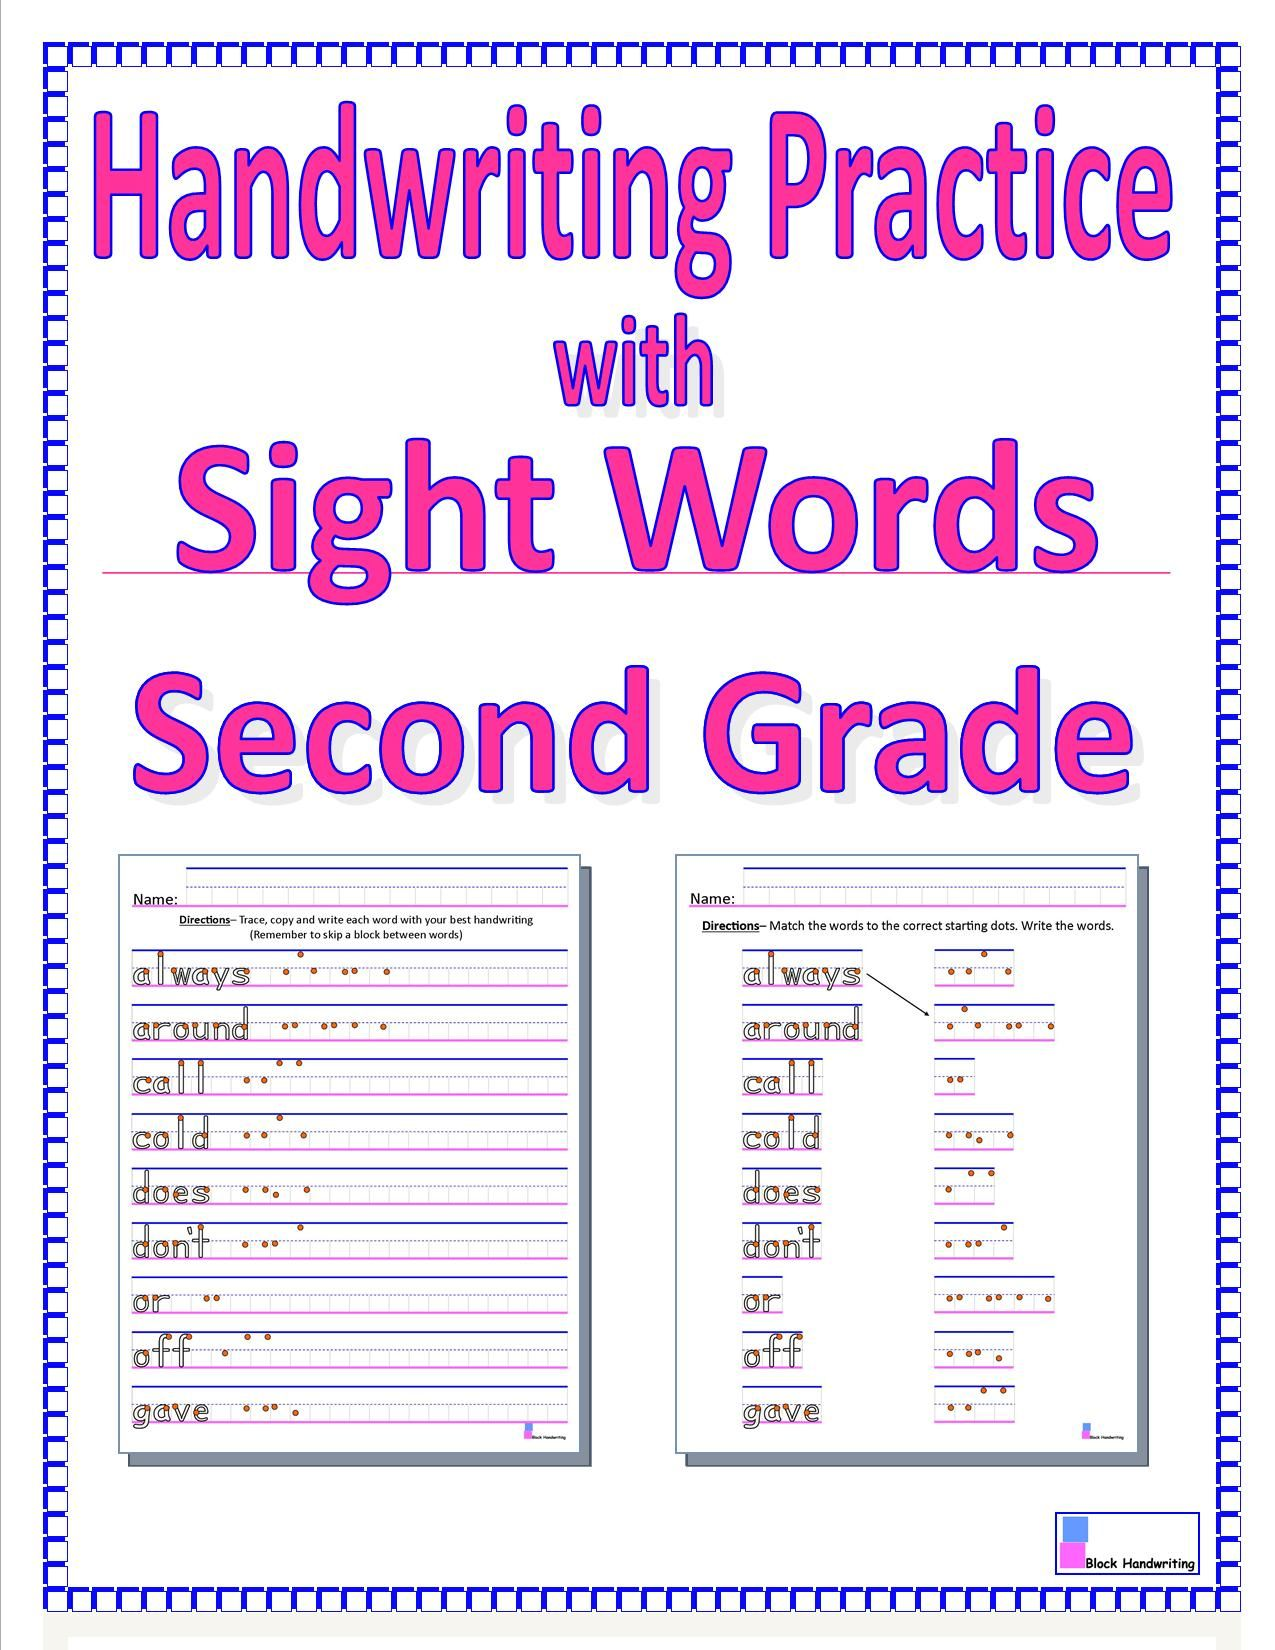 medium resolution of 2nd grade sight words   Handwriting Practice with Second Grade Sight Words    Writing practice worksheets